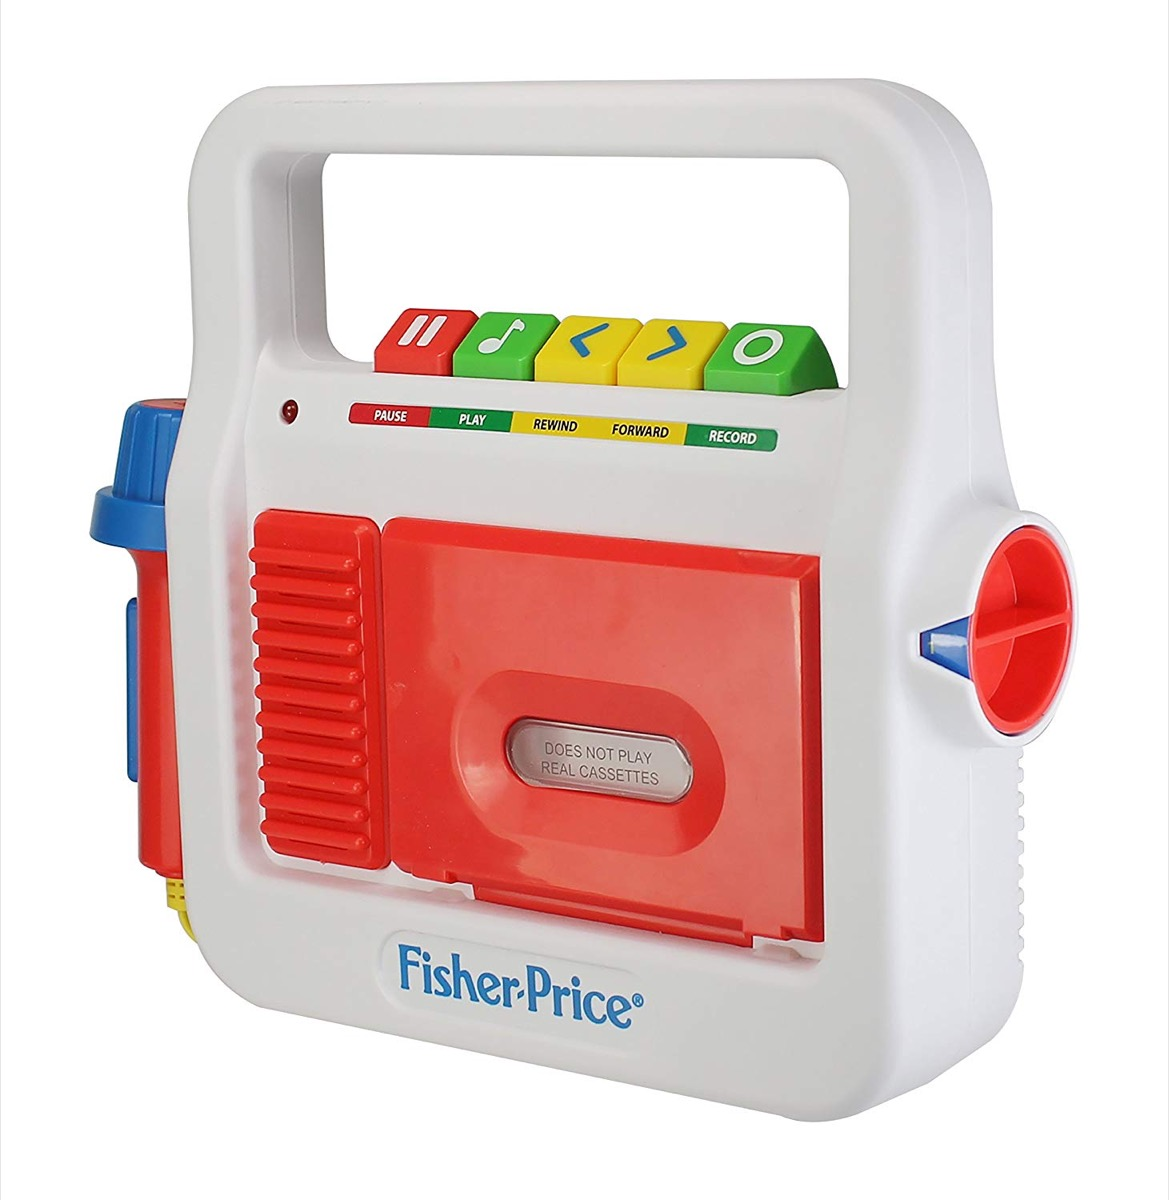 fisher price cassette player